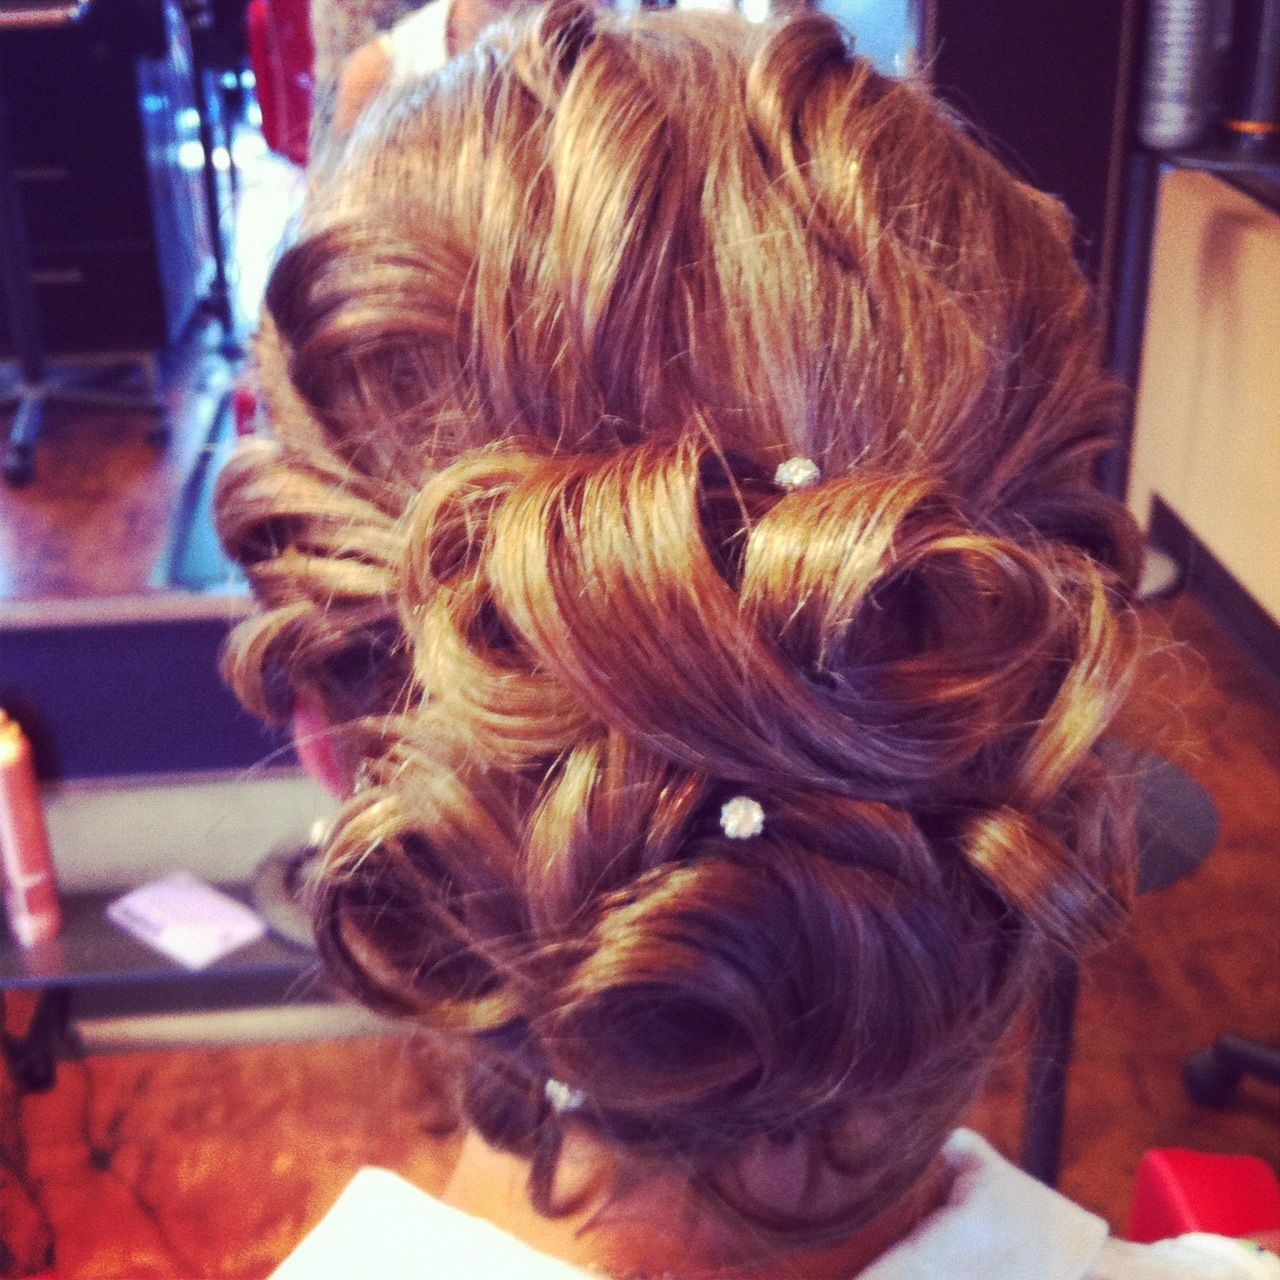 my military ball updo. | hairrrr. | pinterest | updo, military and